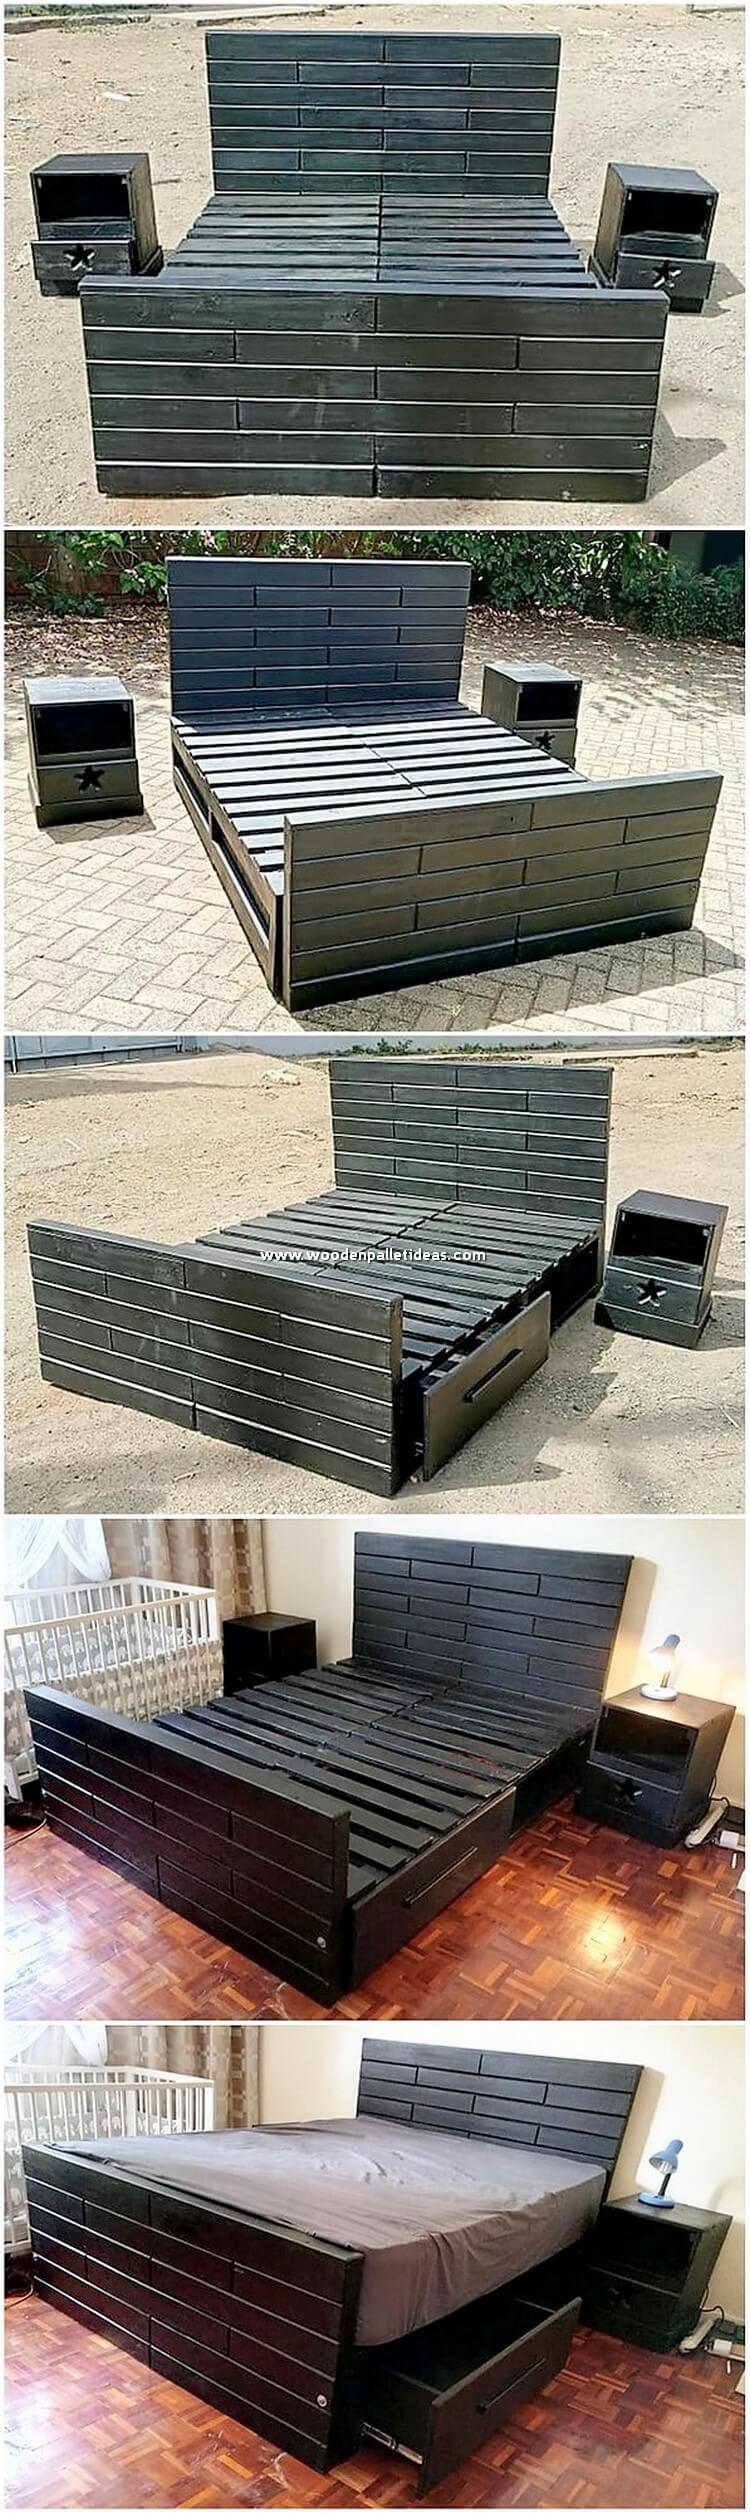 Pallet Bed with Side Tables and Drawers